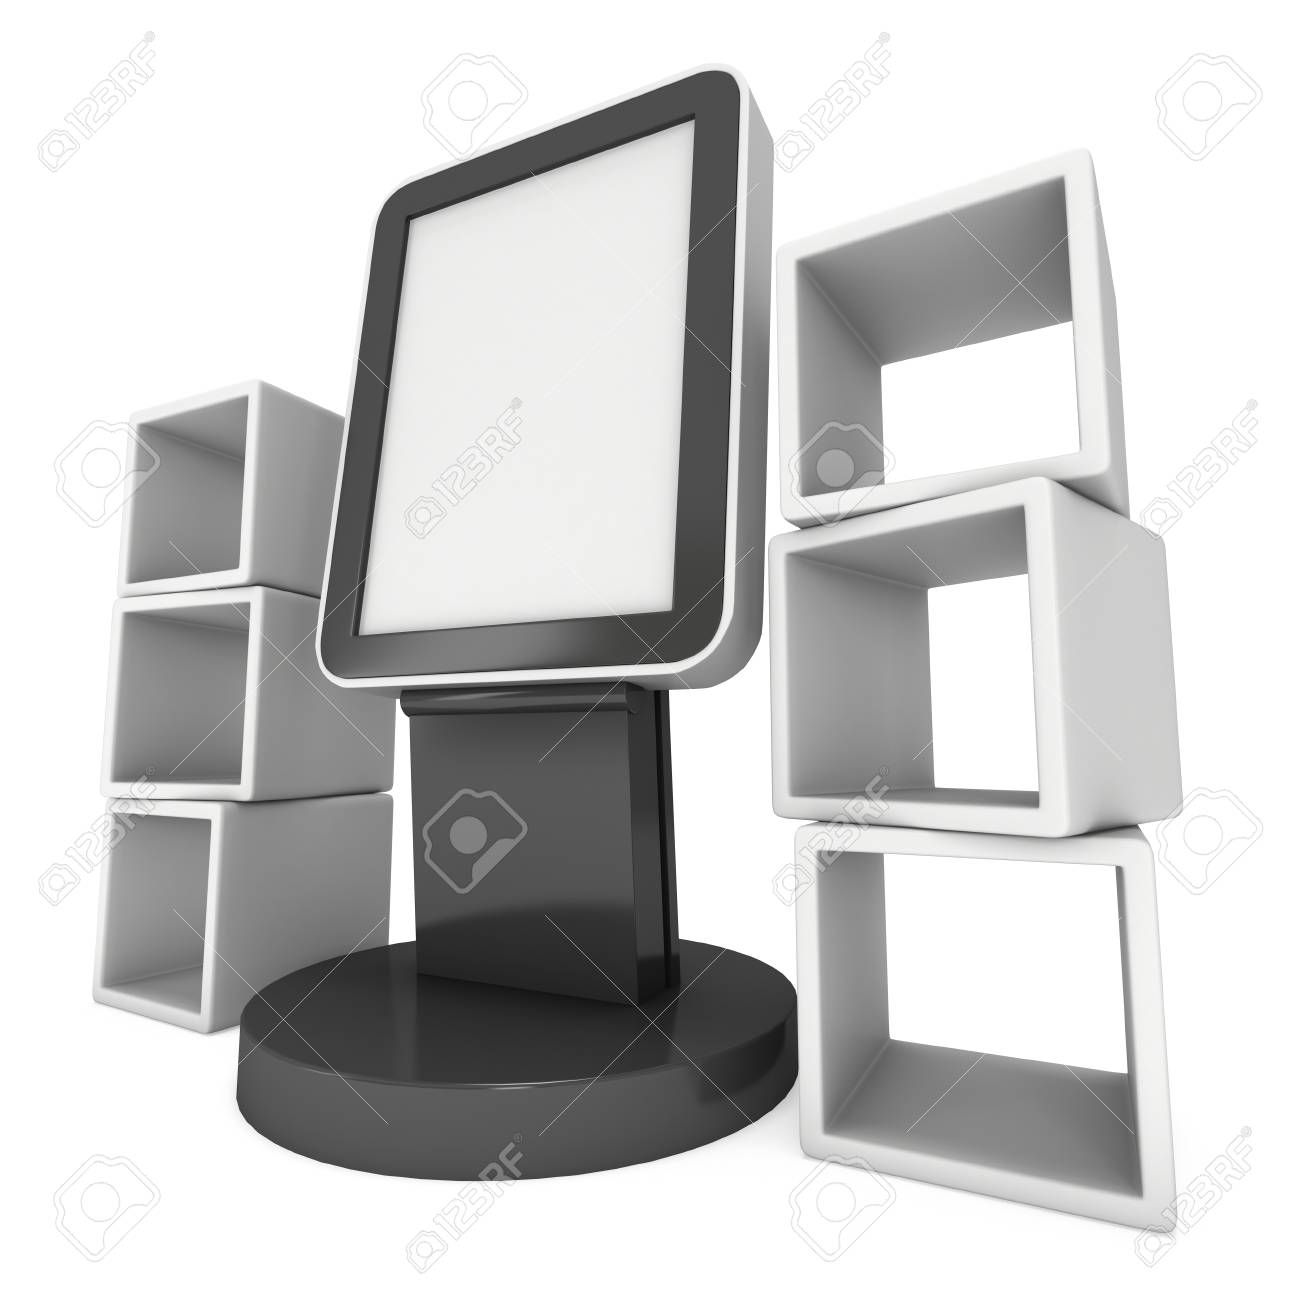 Trade Display Stands : Lcd display stand and product display boxes. blank trade show